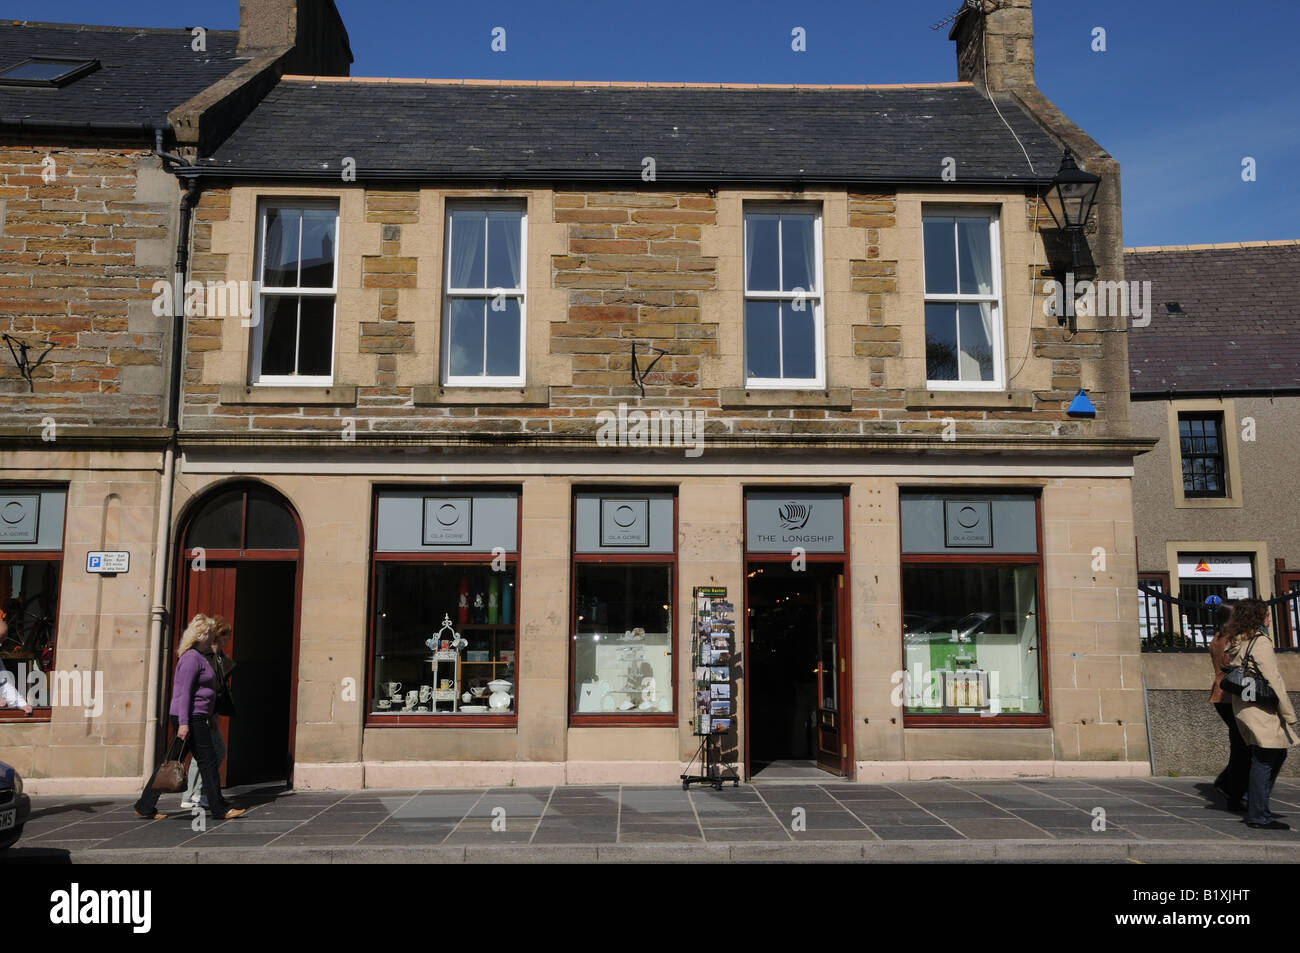 The Longship store in Kirkwall, Orkney sells Ola Gorie's jewelry and other crafts. - Stock Image